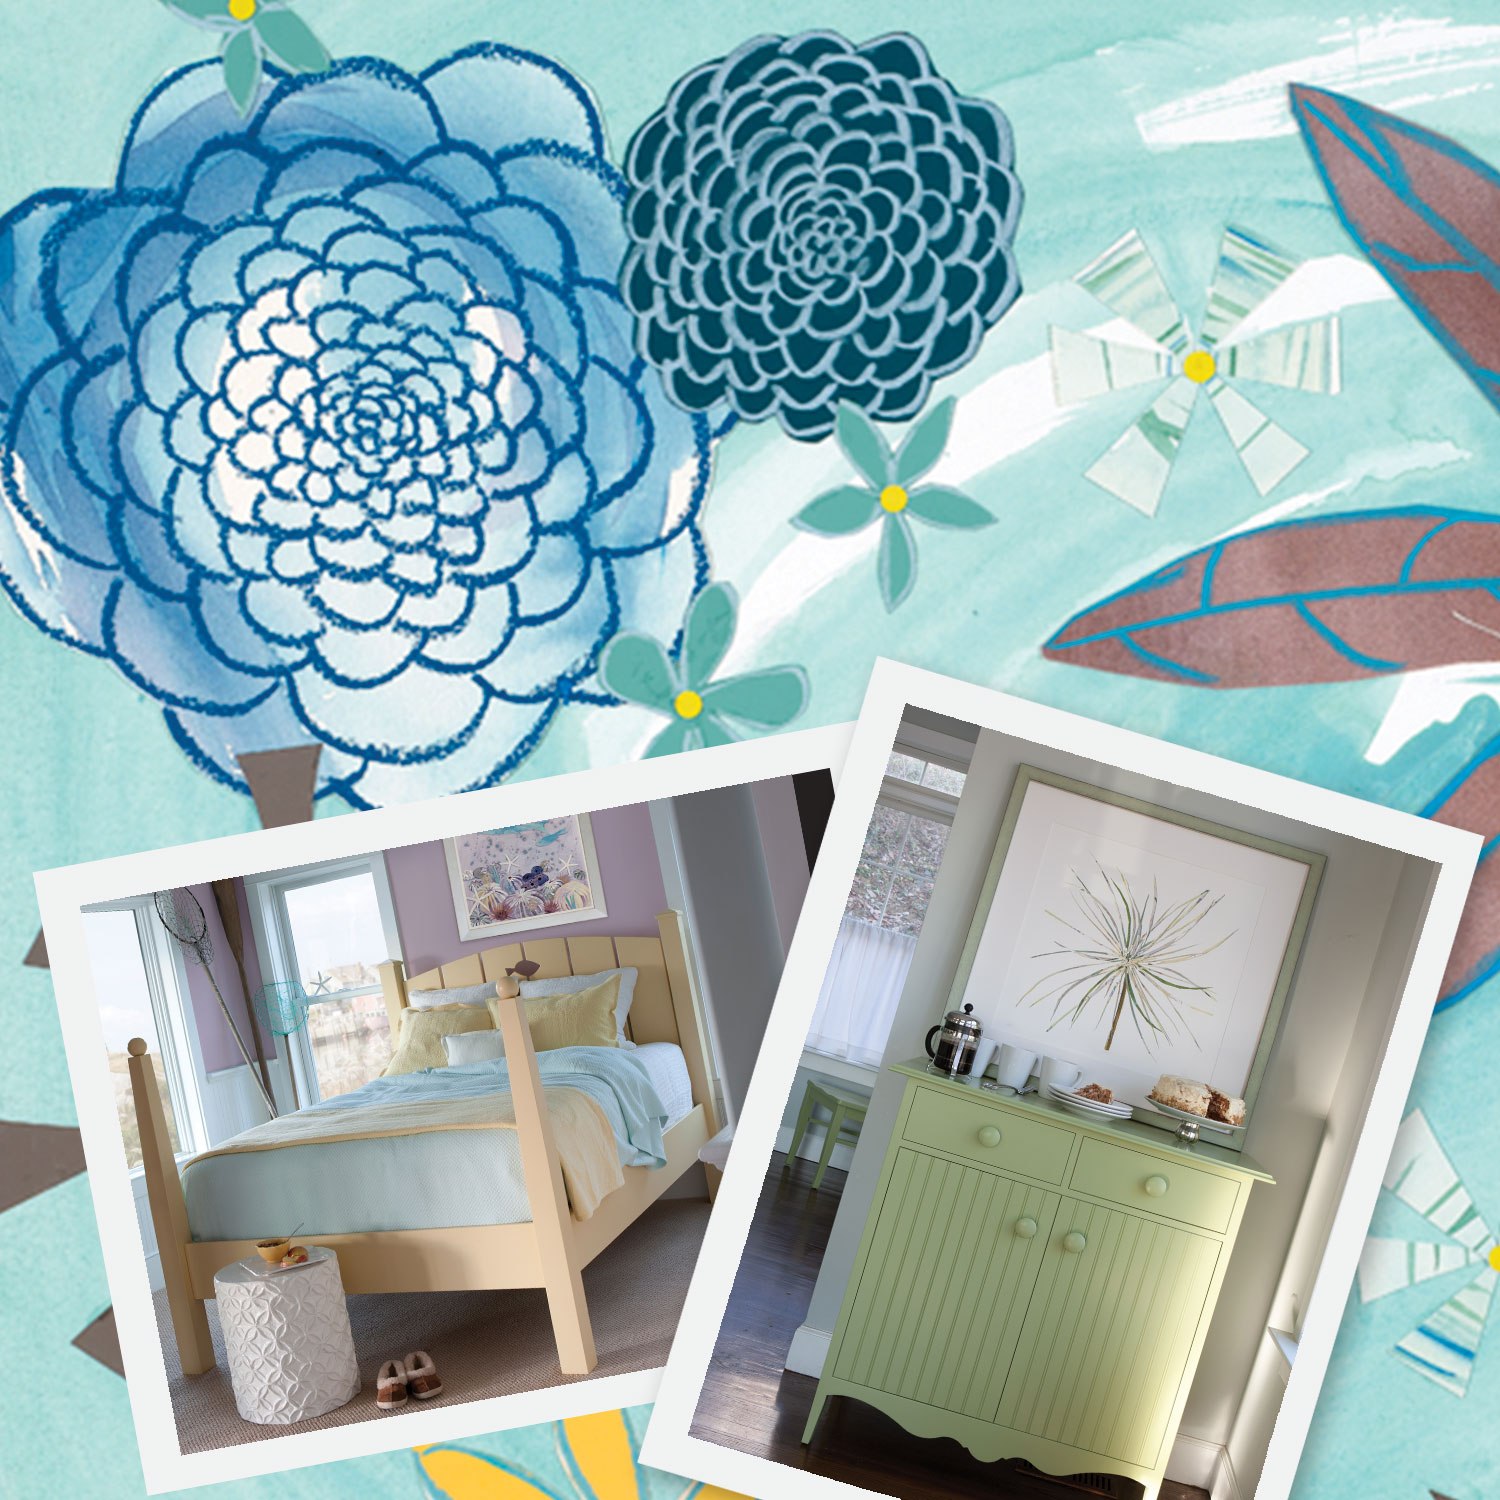 Liz Lind for MAINE COTTAGE® - When the Creative Director of Maine Cottage® — Lauren Russell — approached Liz about creating a collection that would compliment their colorful coastal furniture — how could she resist. Visit mainecottage.com to see how Liz's prints compliment the colorful furniture and vibrant fabrics that Maine Cottage® is known for.